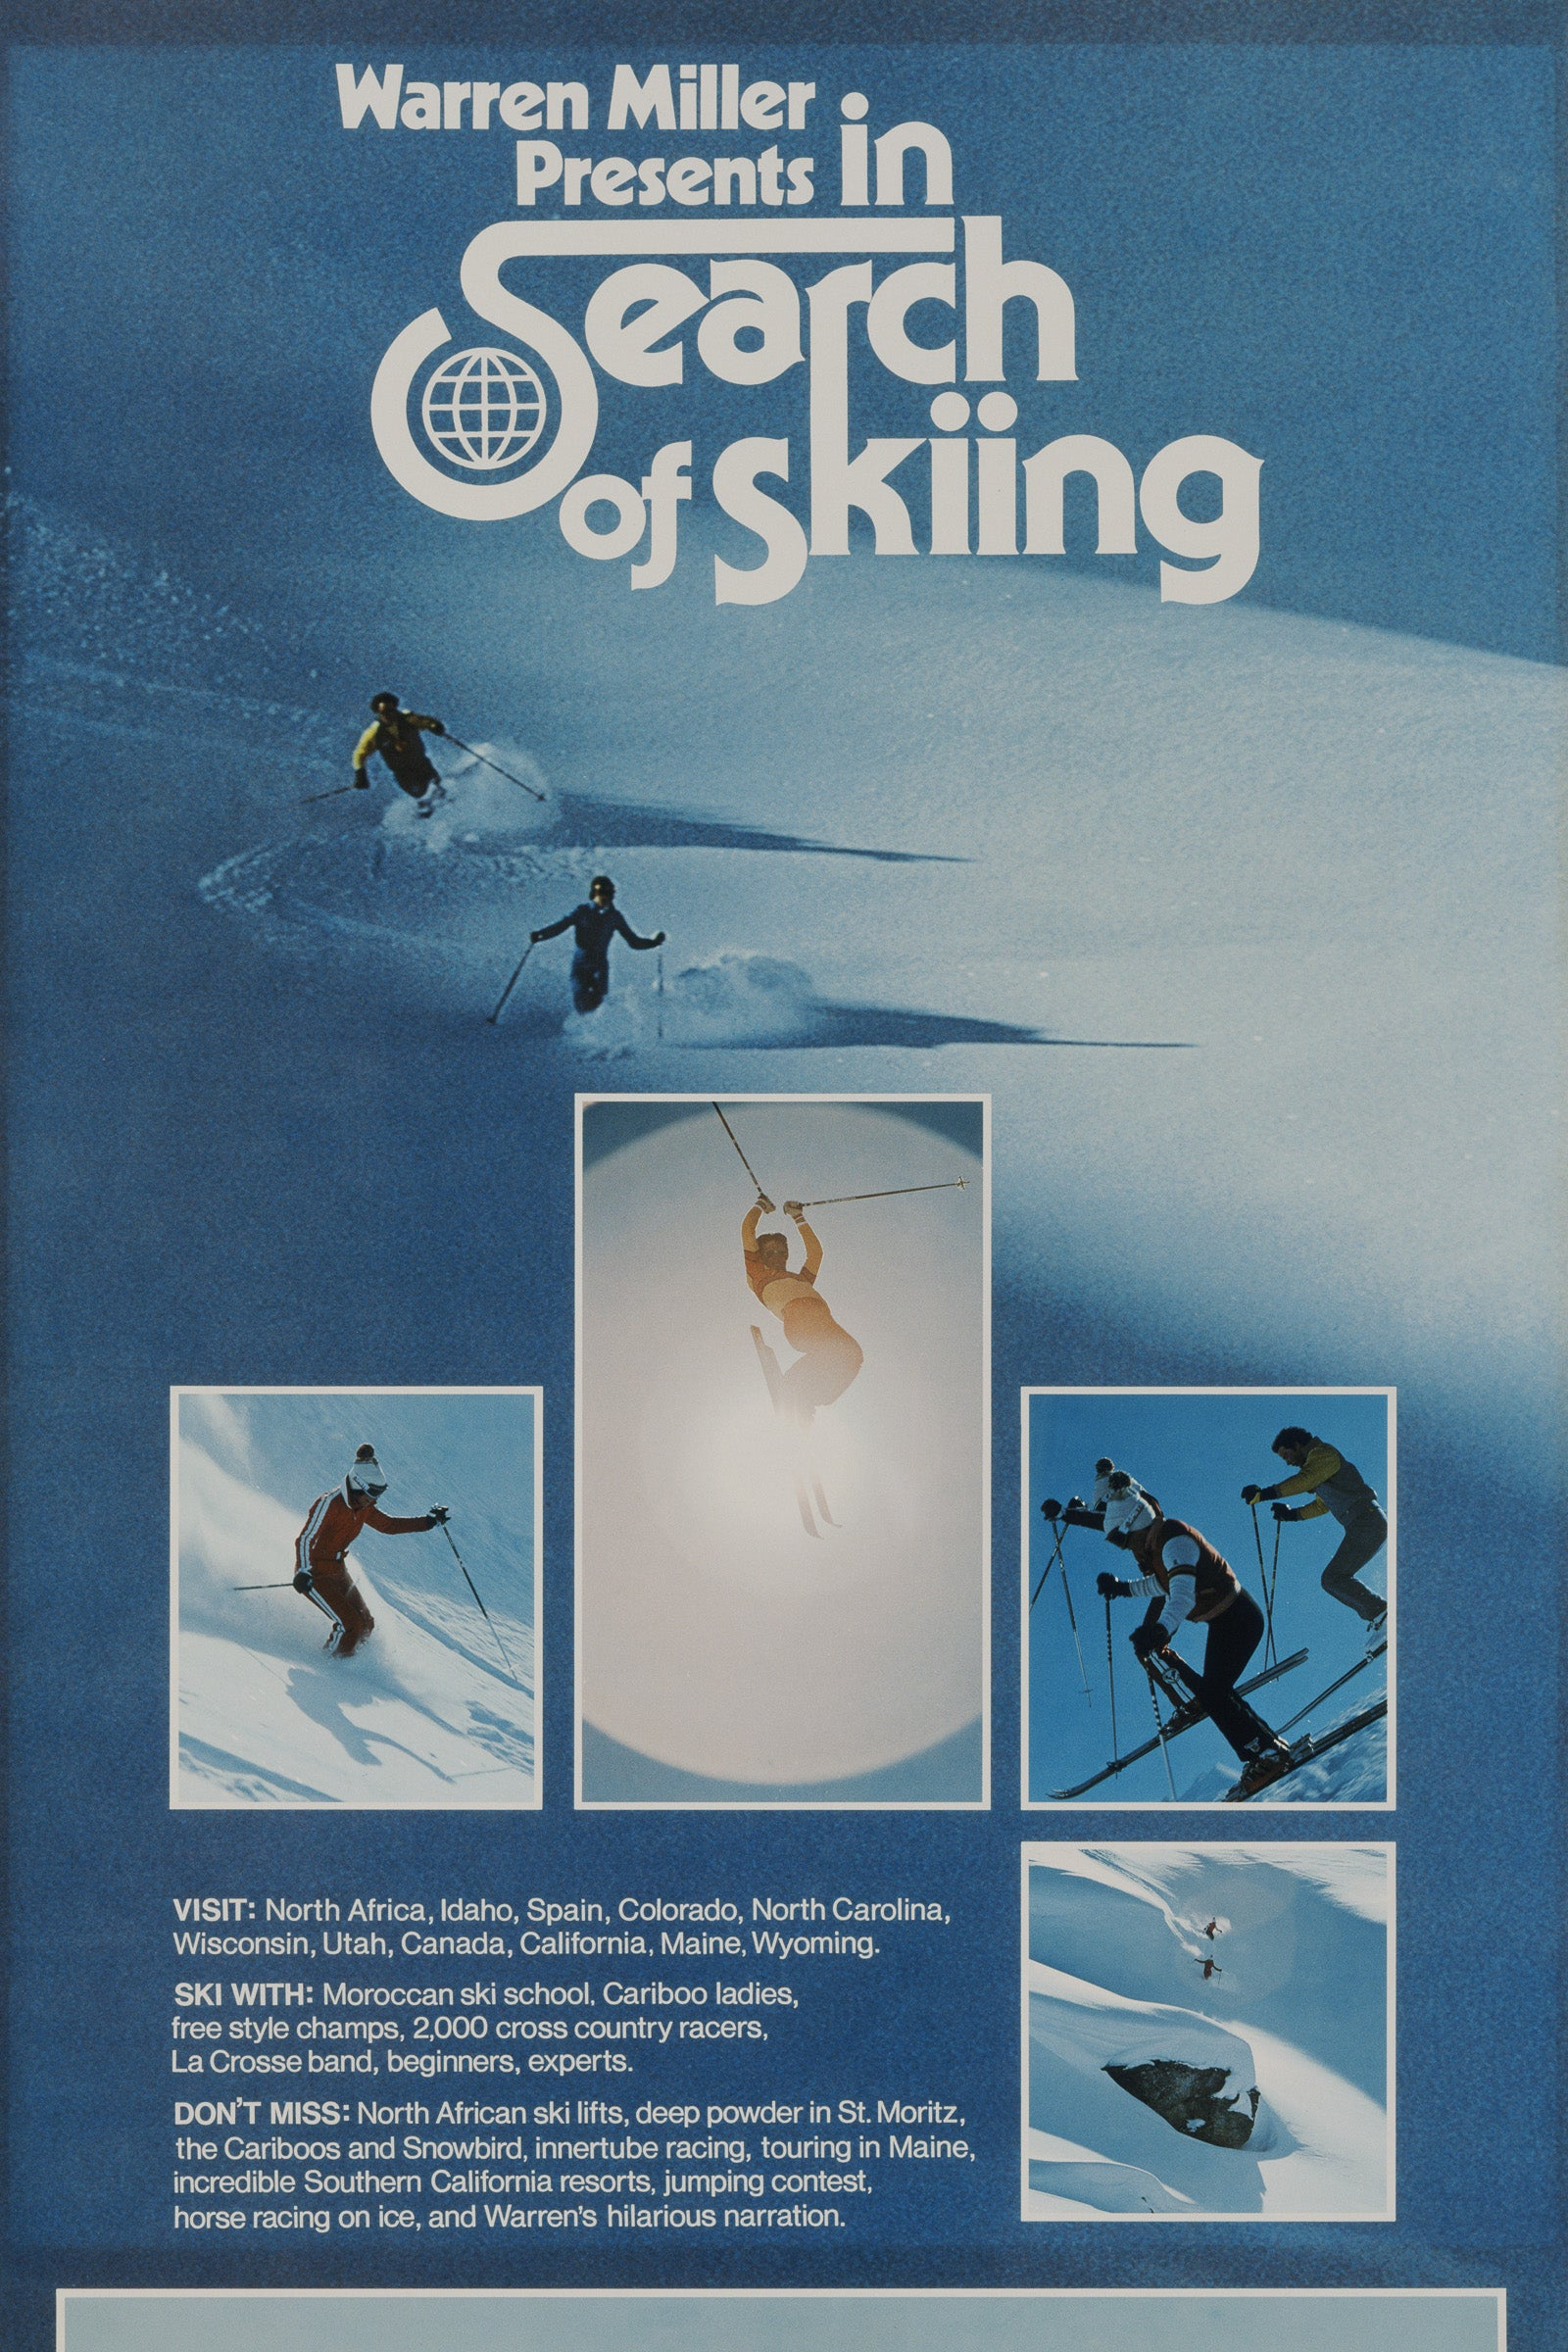 In Search of Skiing (1977)